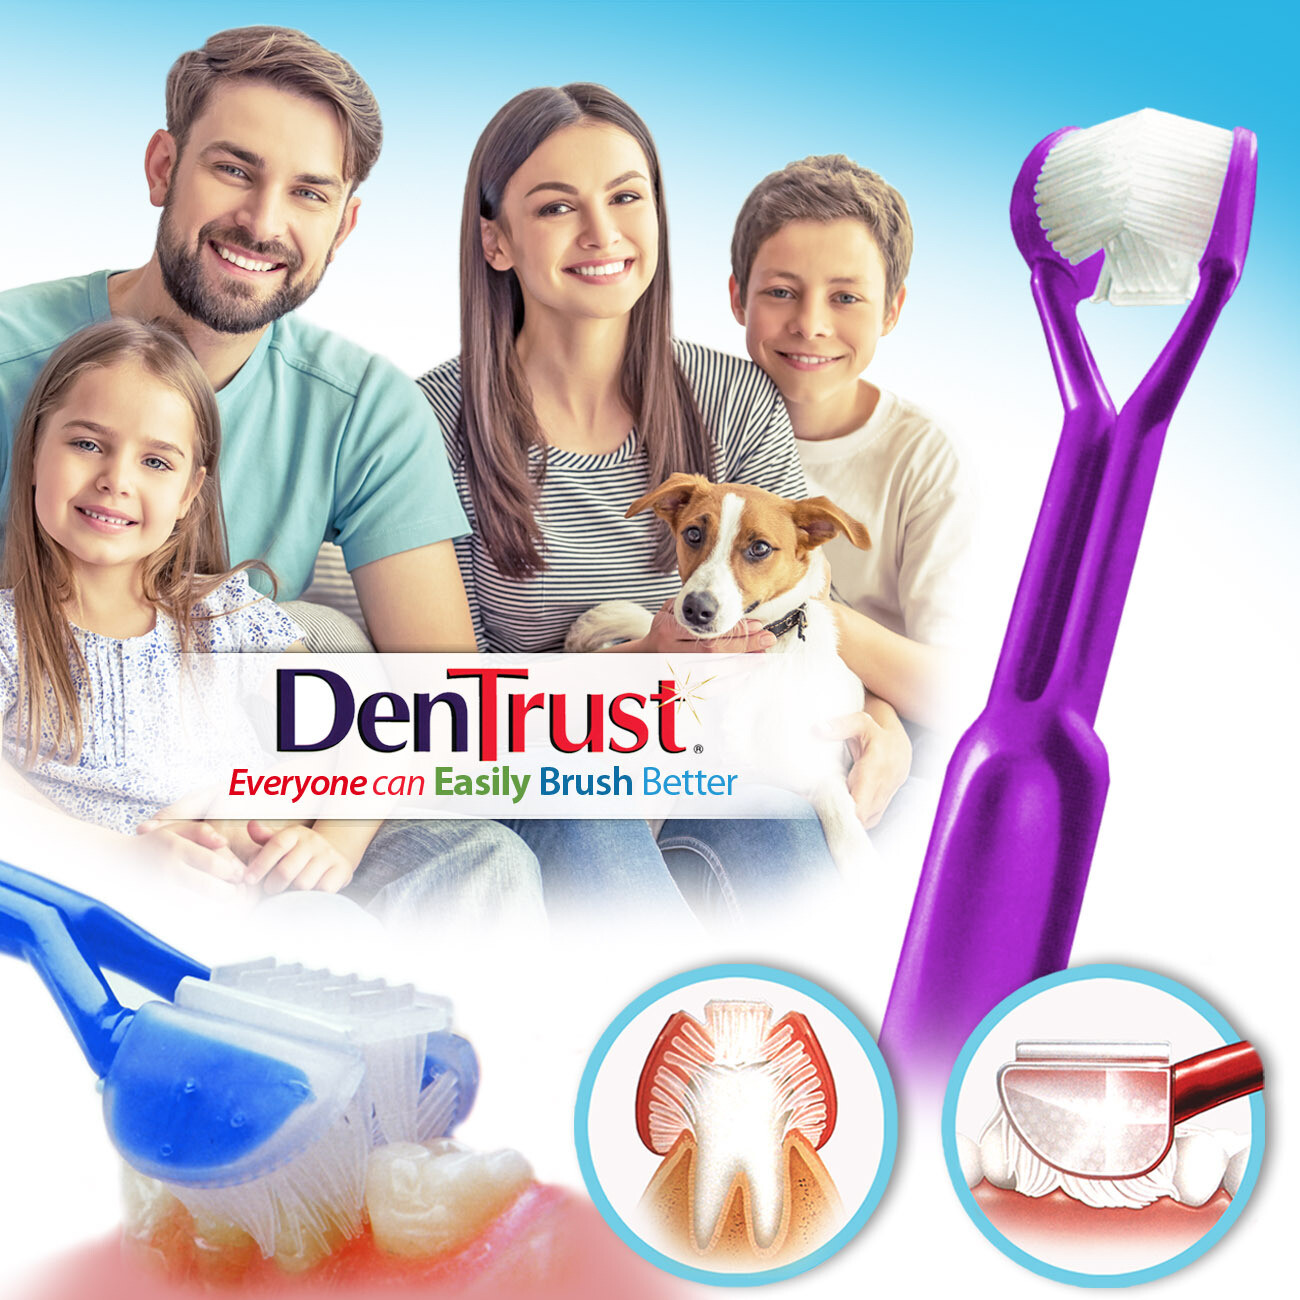 DenTrust 3-SIDED Toothbrush - Easily Brush Better - Clinically Proven Results  :: Fast, Easy & More Effective for the Whole Family - Adults, Teens, Children & Special Needs